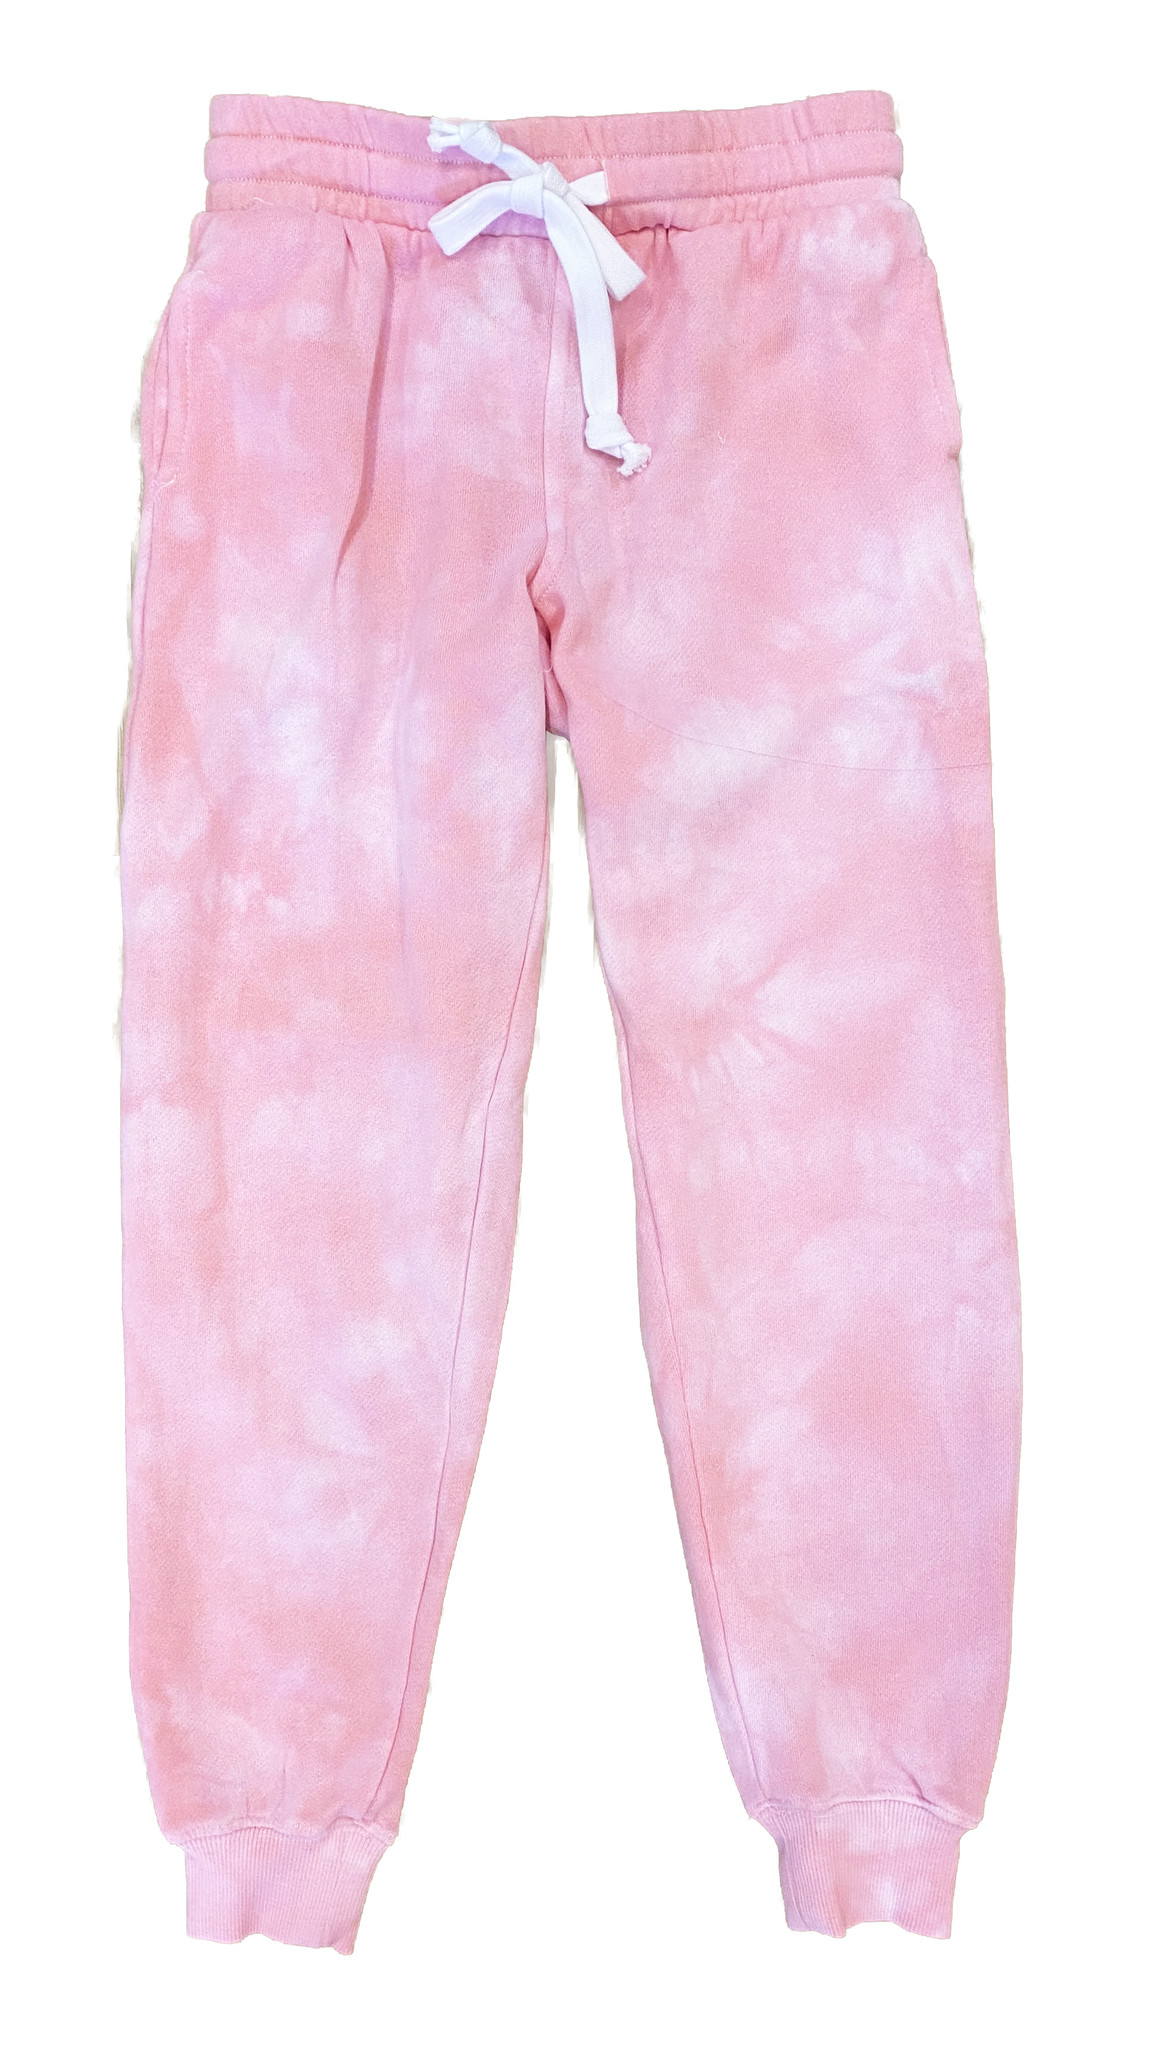 Katie J NYC Pink Cloud Tie Dye Sweatpant